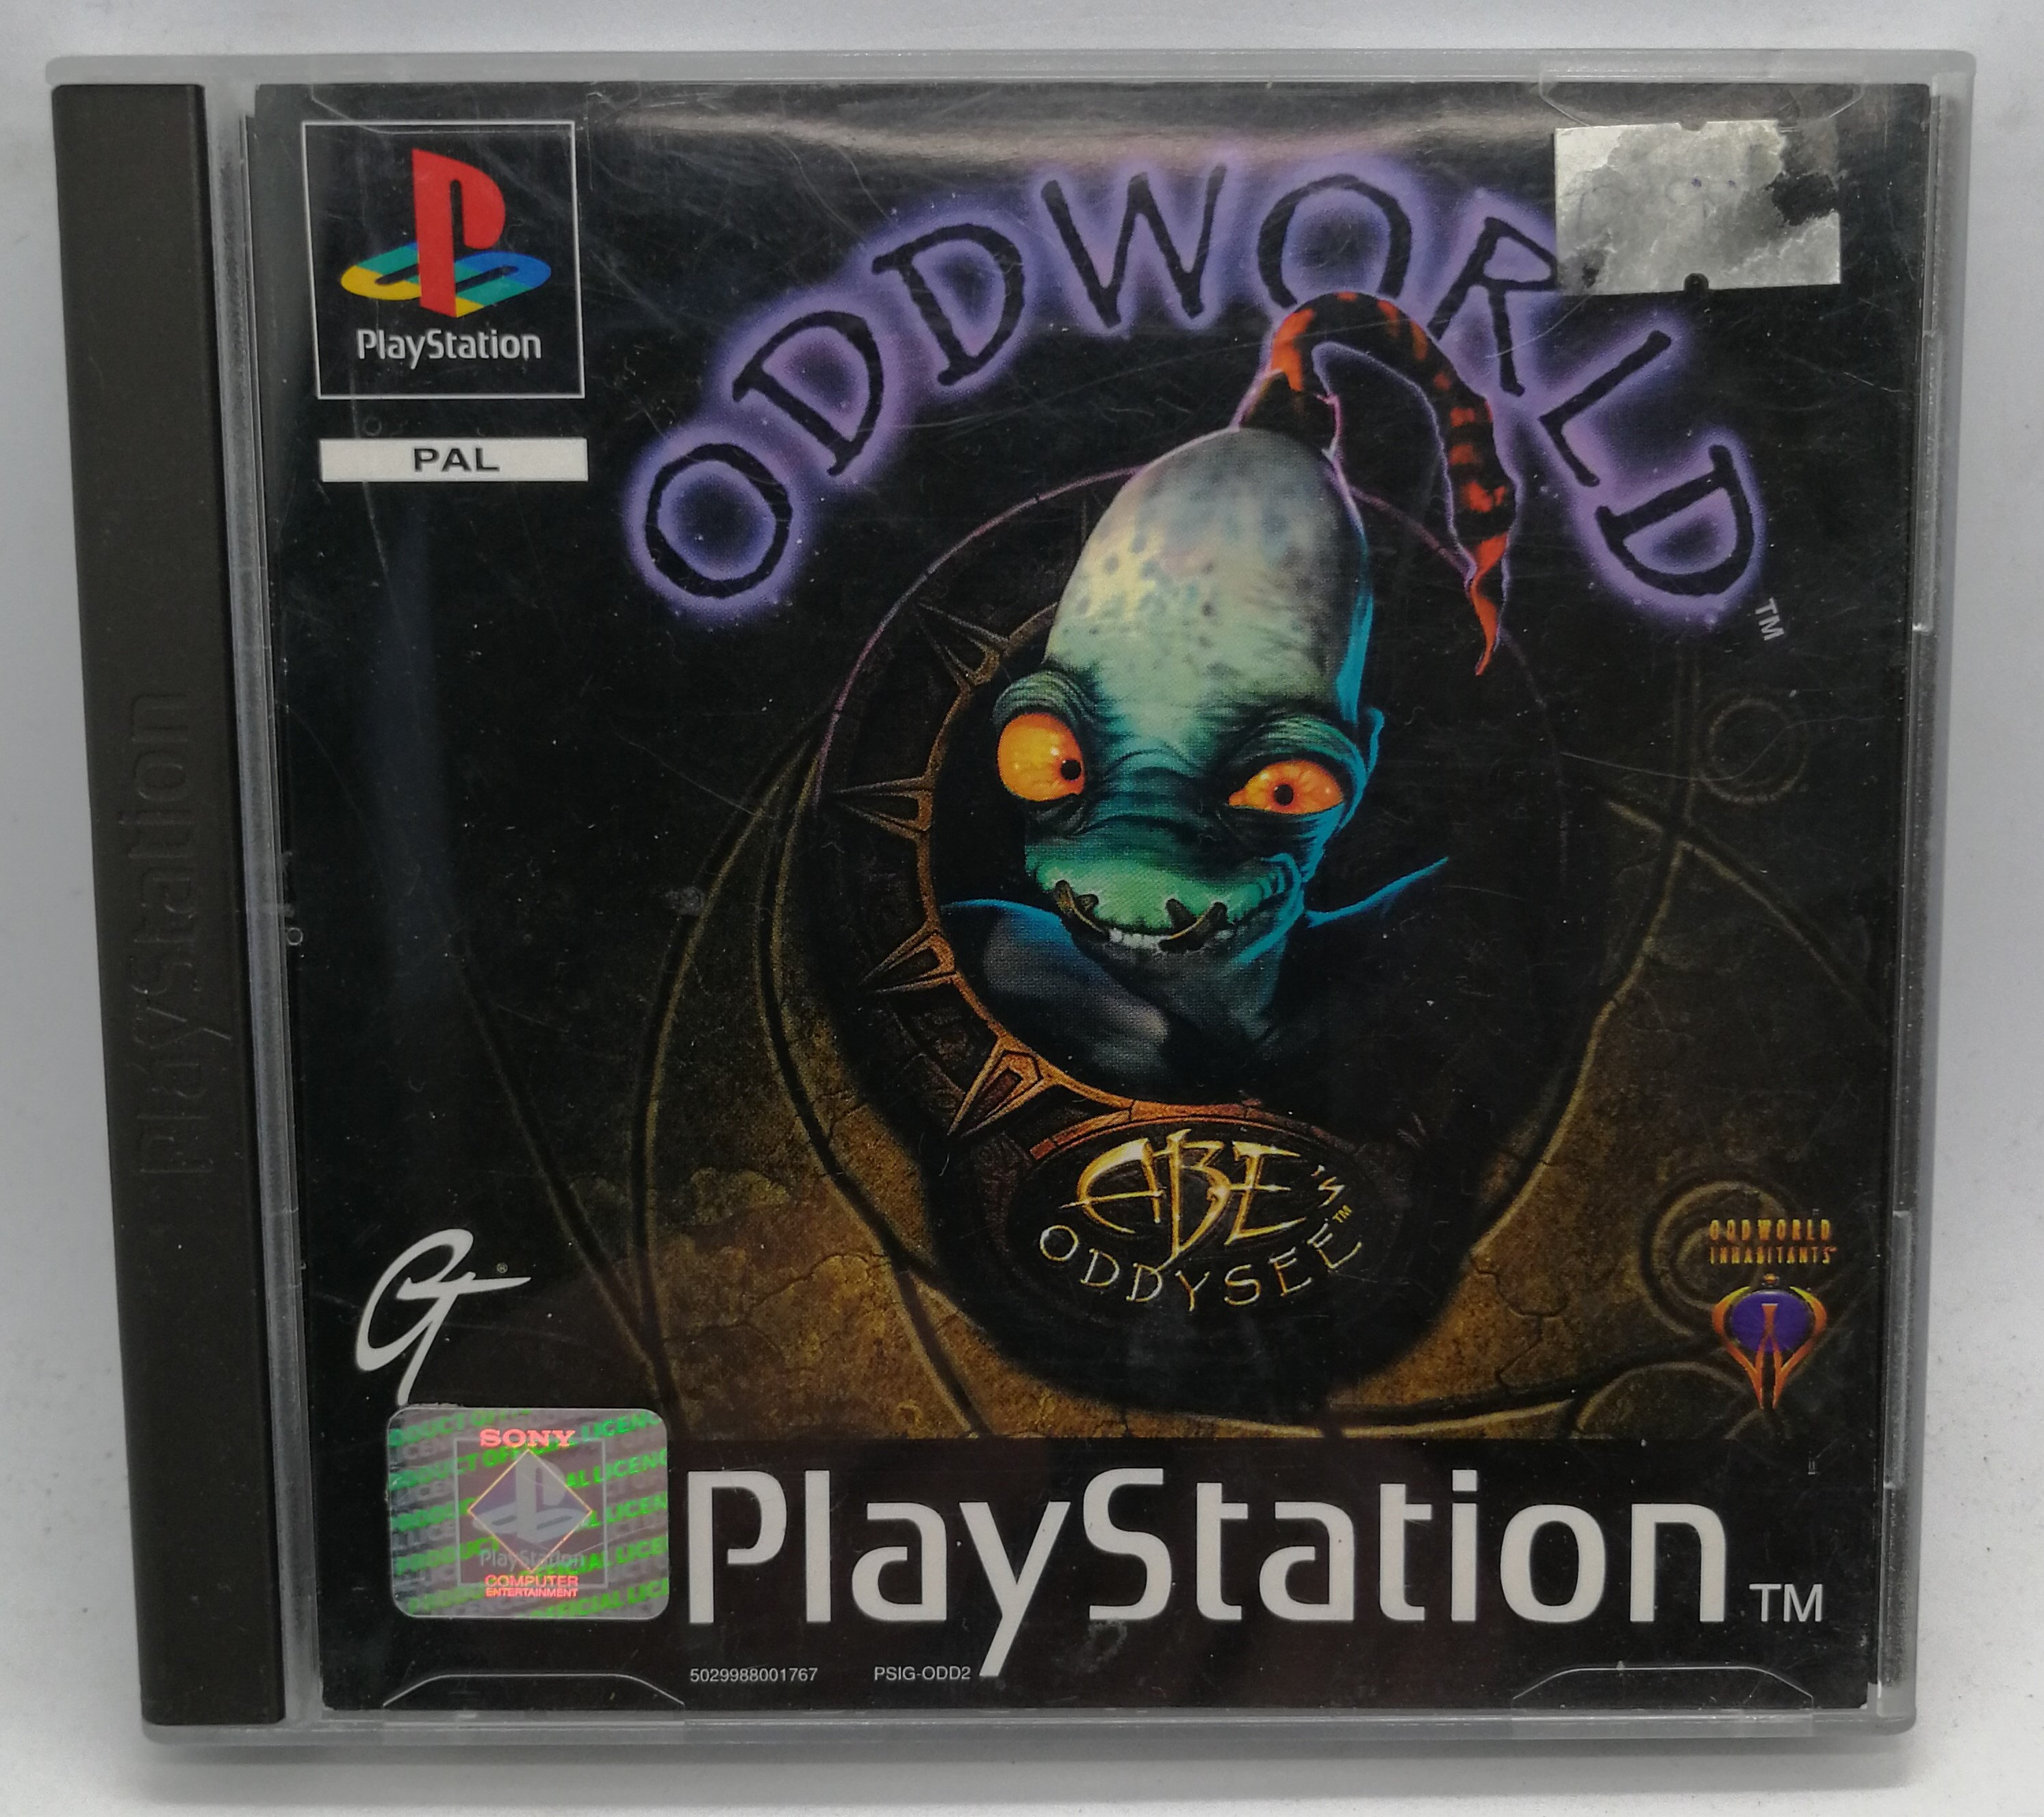 Oddworld: Abe's Oddysee for Sony PlayStation PS1